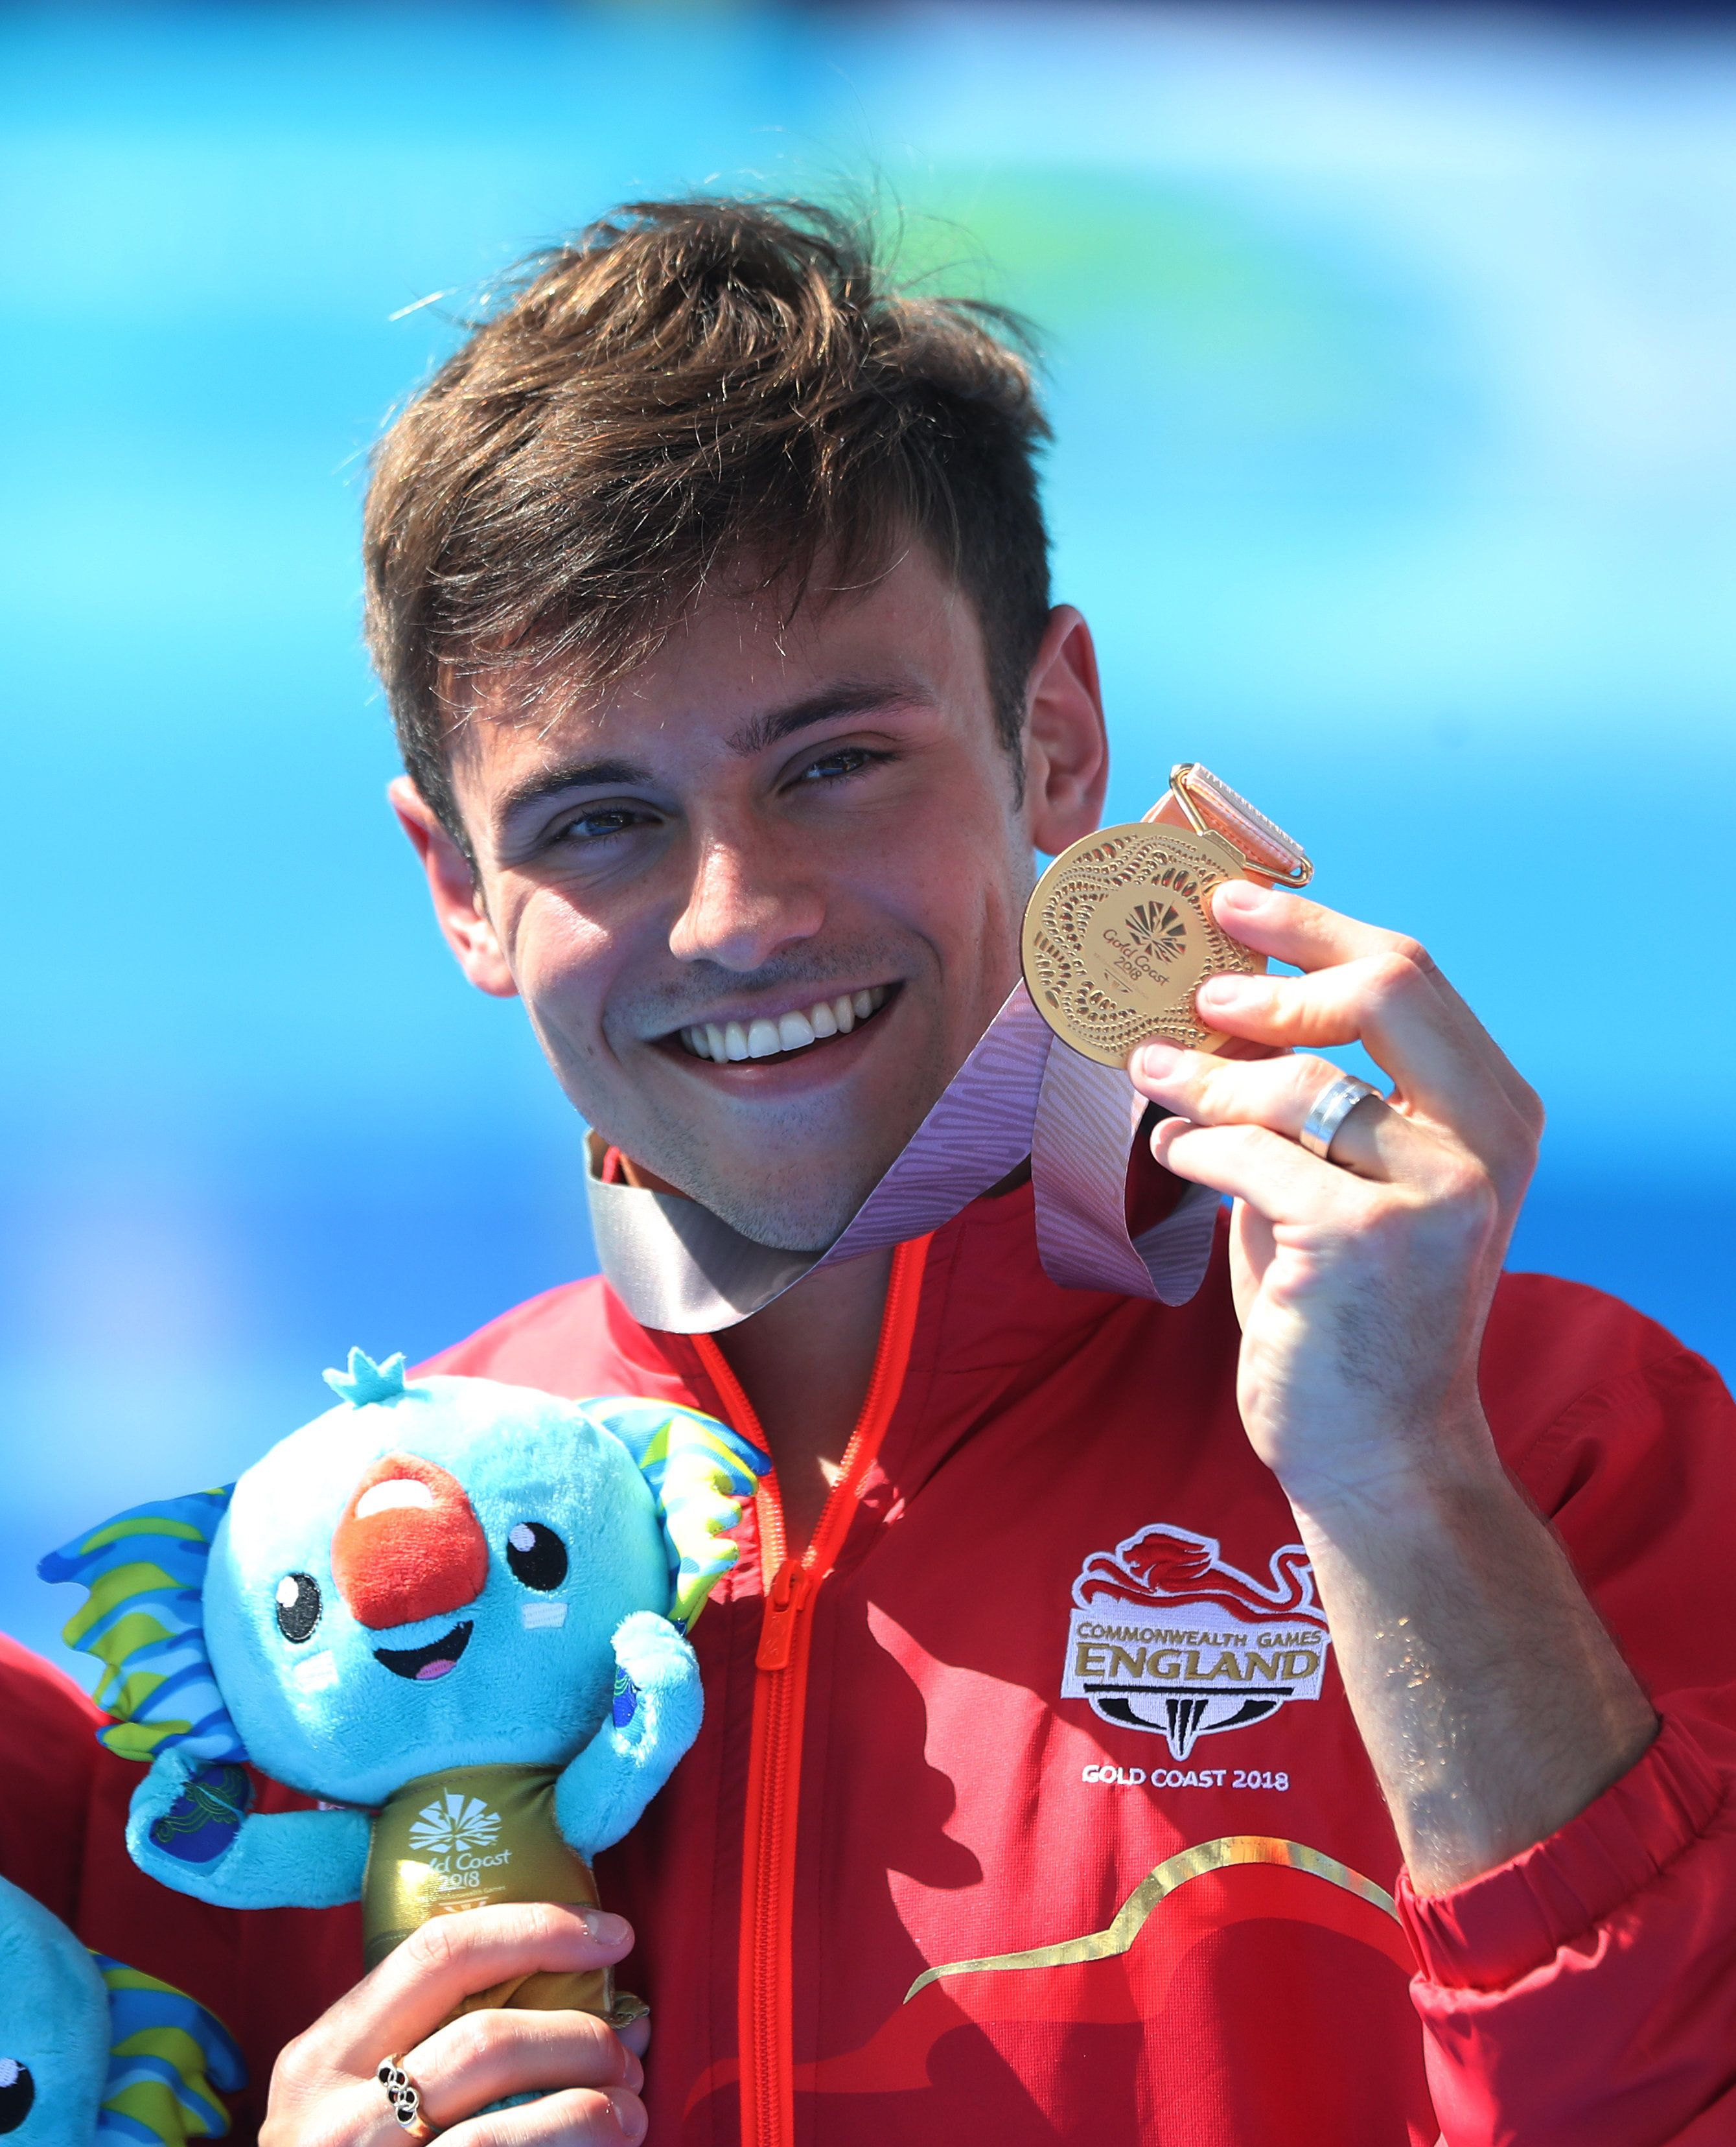 Tom Daley Highlights Commonwealth Countries' LGBT Laws After Gold Medal Win